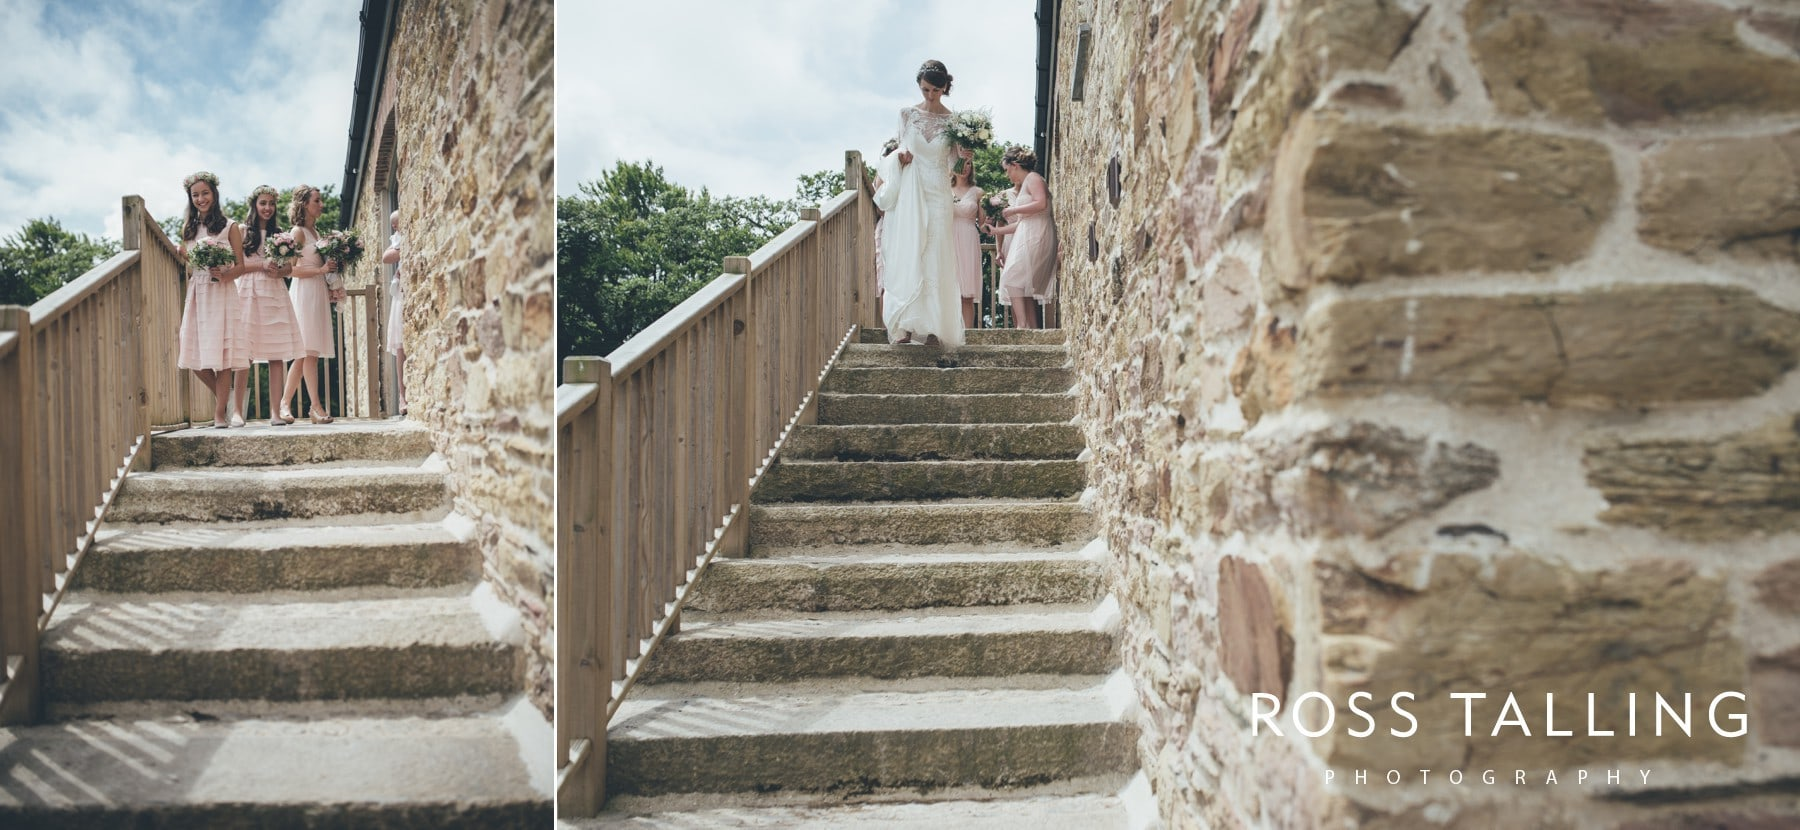 Wedding Photography Cornwall - Nancarrow Farm - Jess & Dave_0021